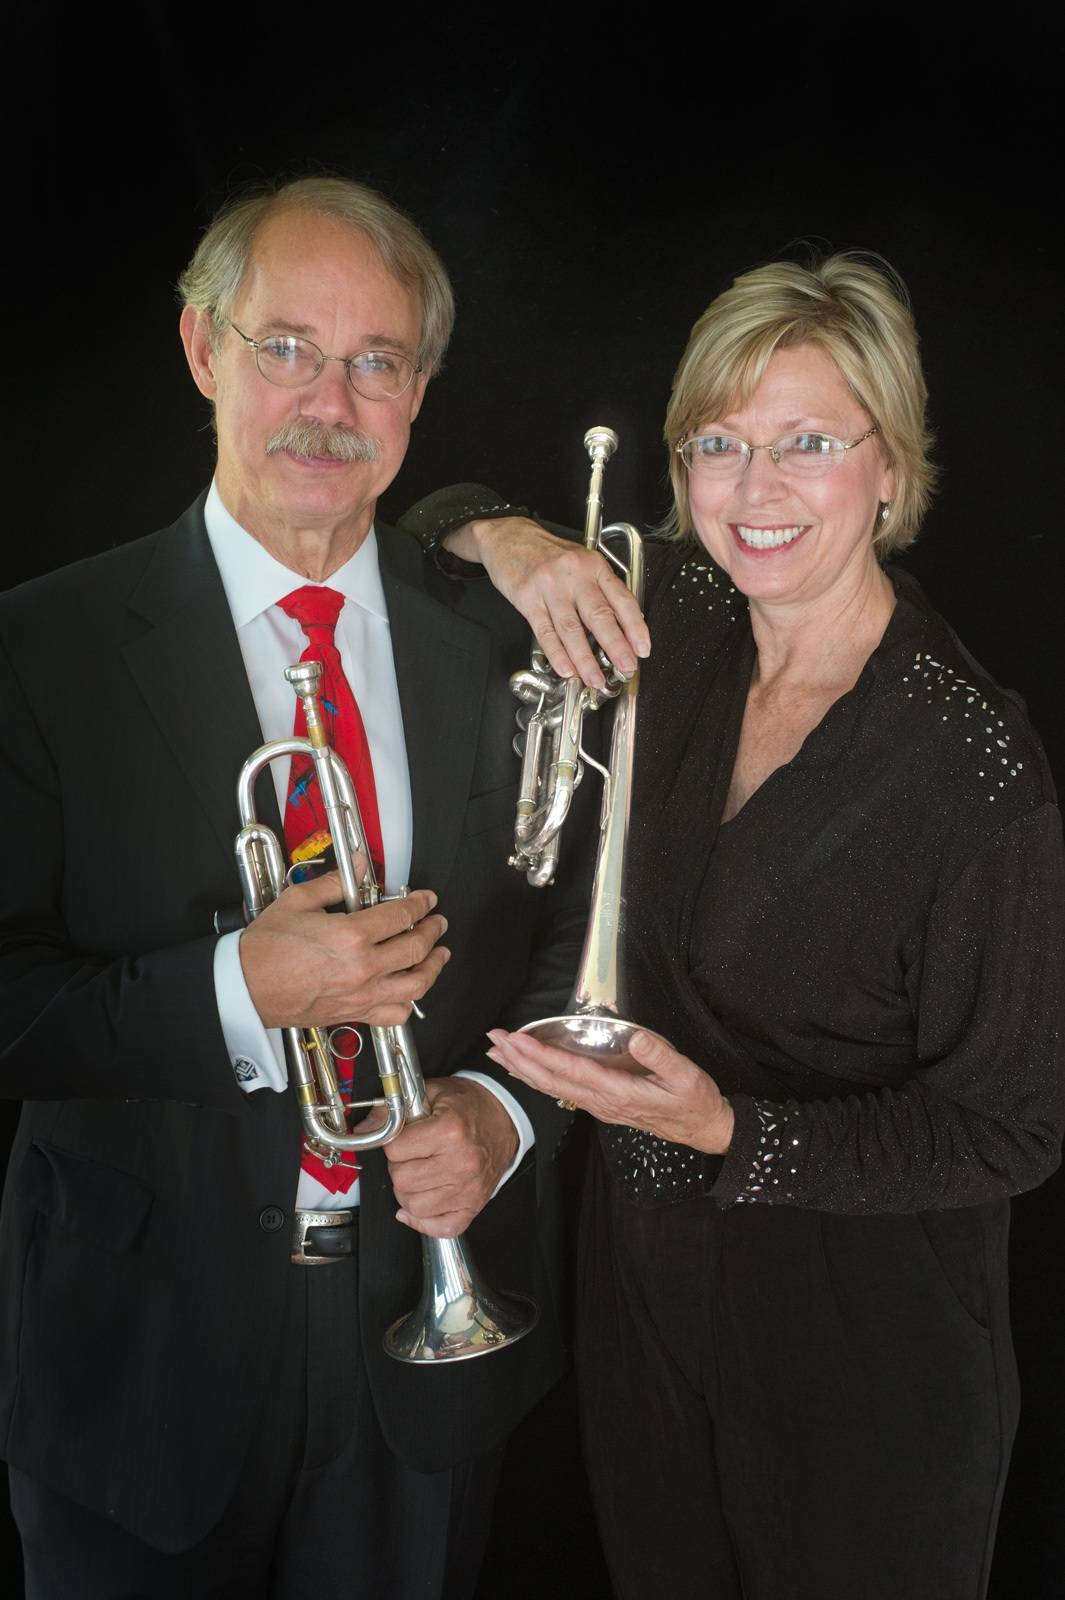 Trumpet Duo Charles Geyer and Barbara Butler